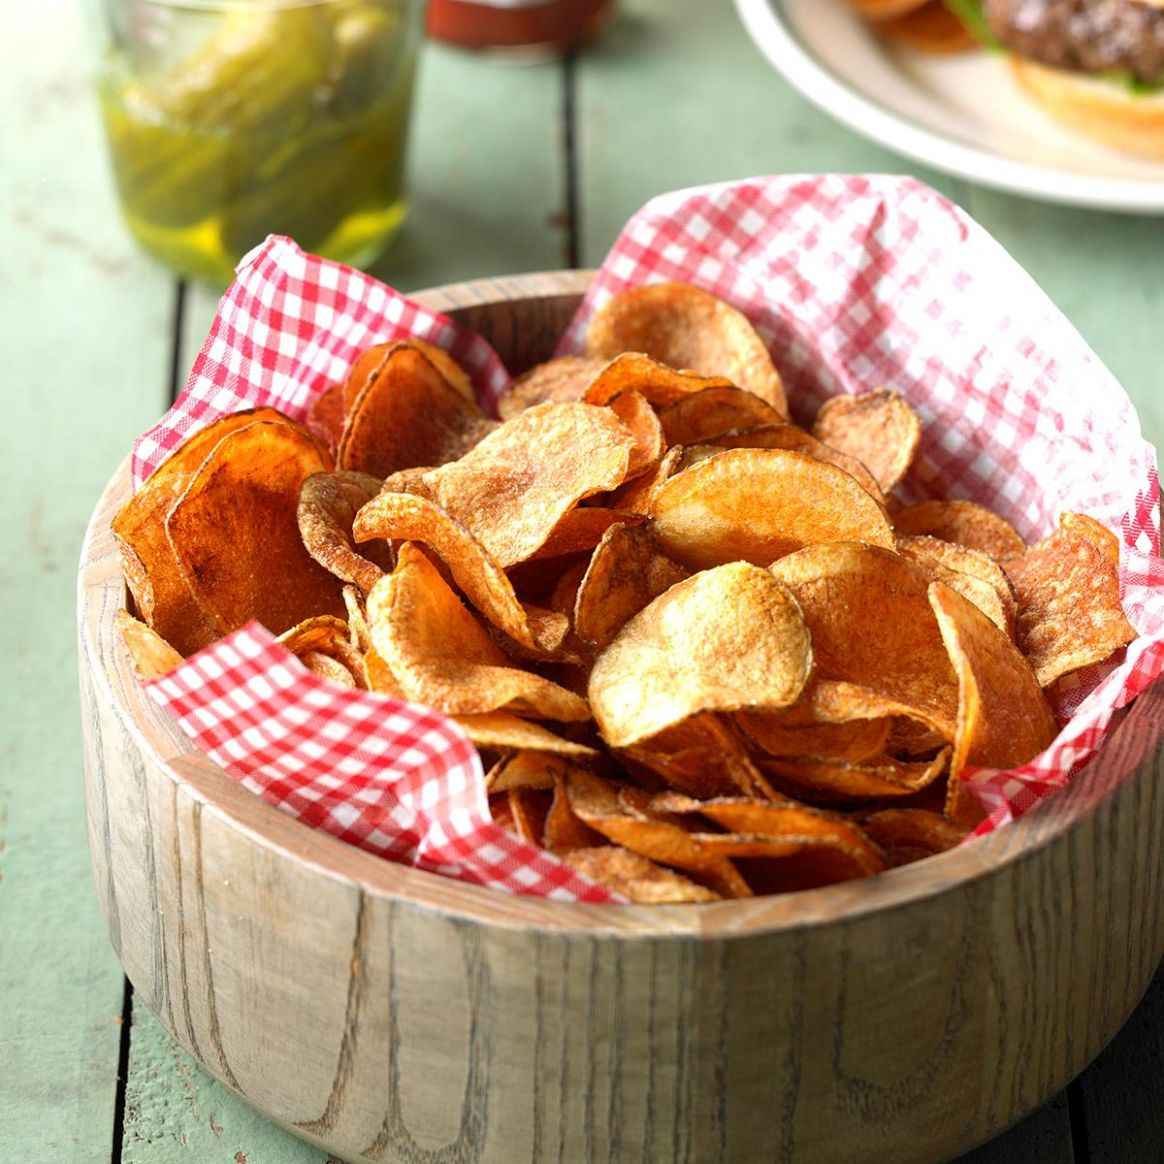 Homemade Potato Chips - Recipes With Potato Chips